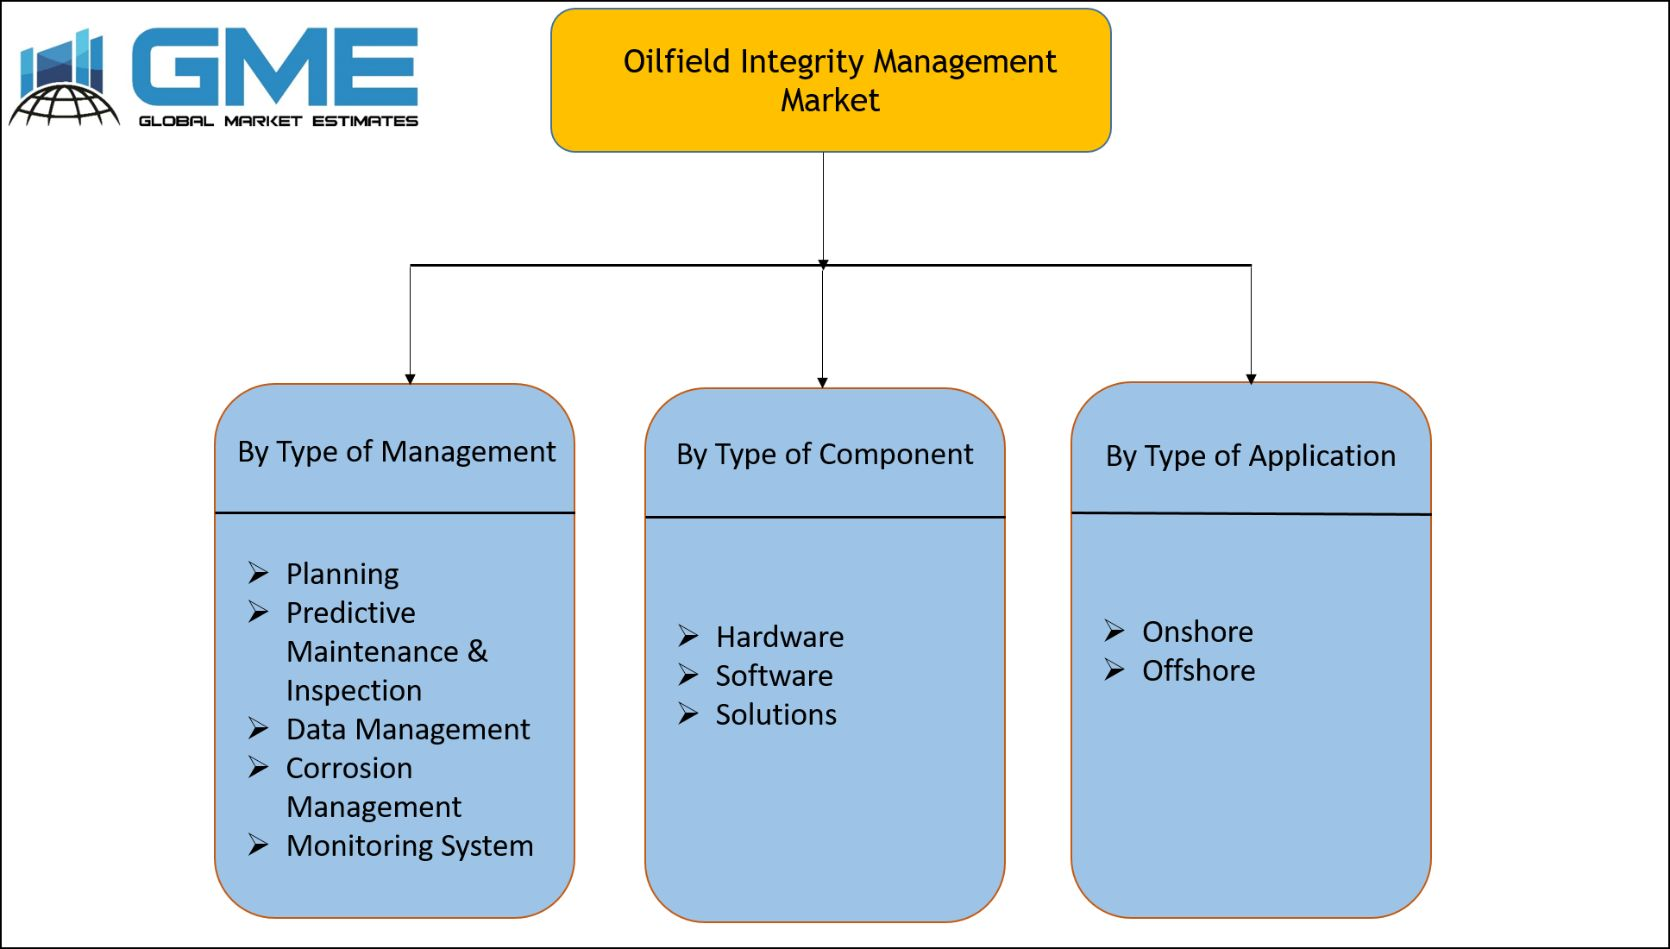 Oilfield Integrity Management Market Segmentation